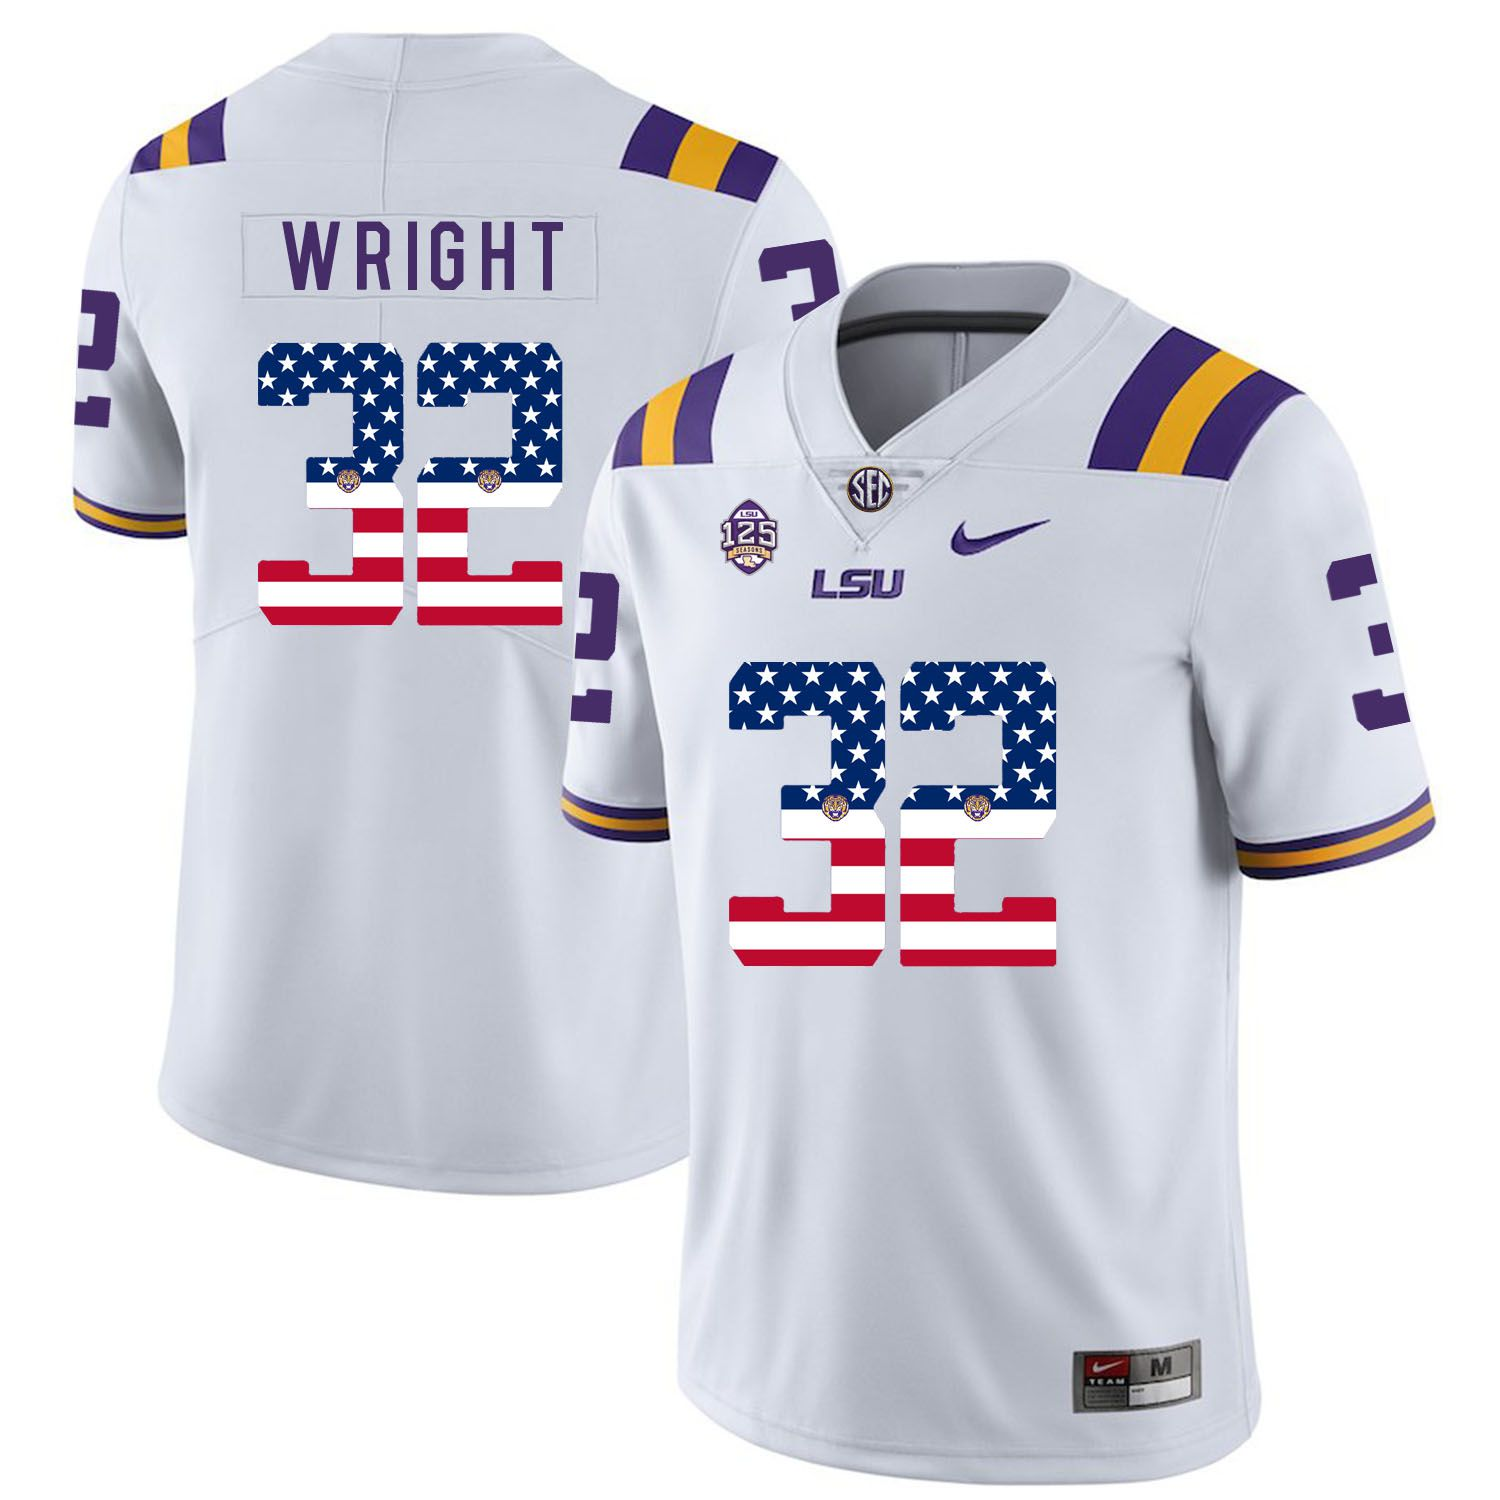 Men LSU Tigers 32 Wright White Flag Customized NCAA Jerseys